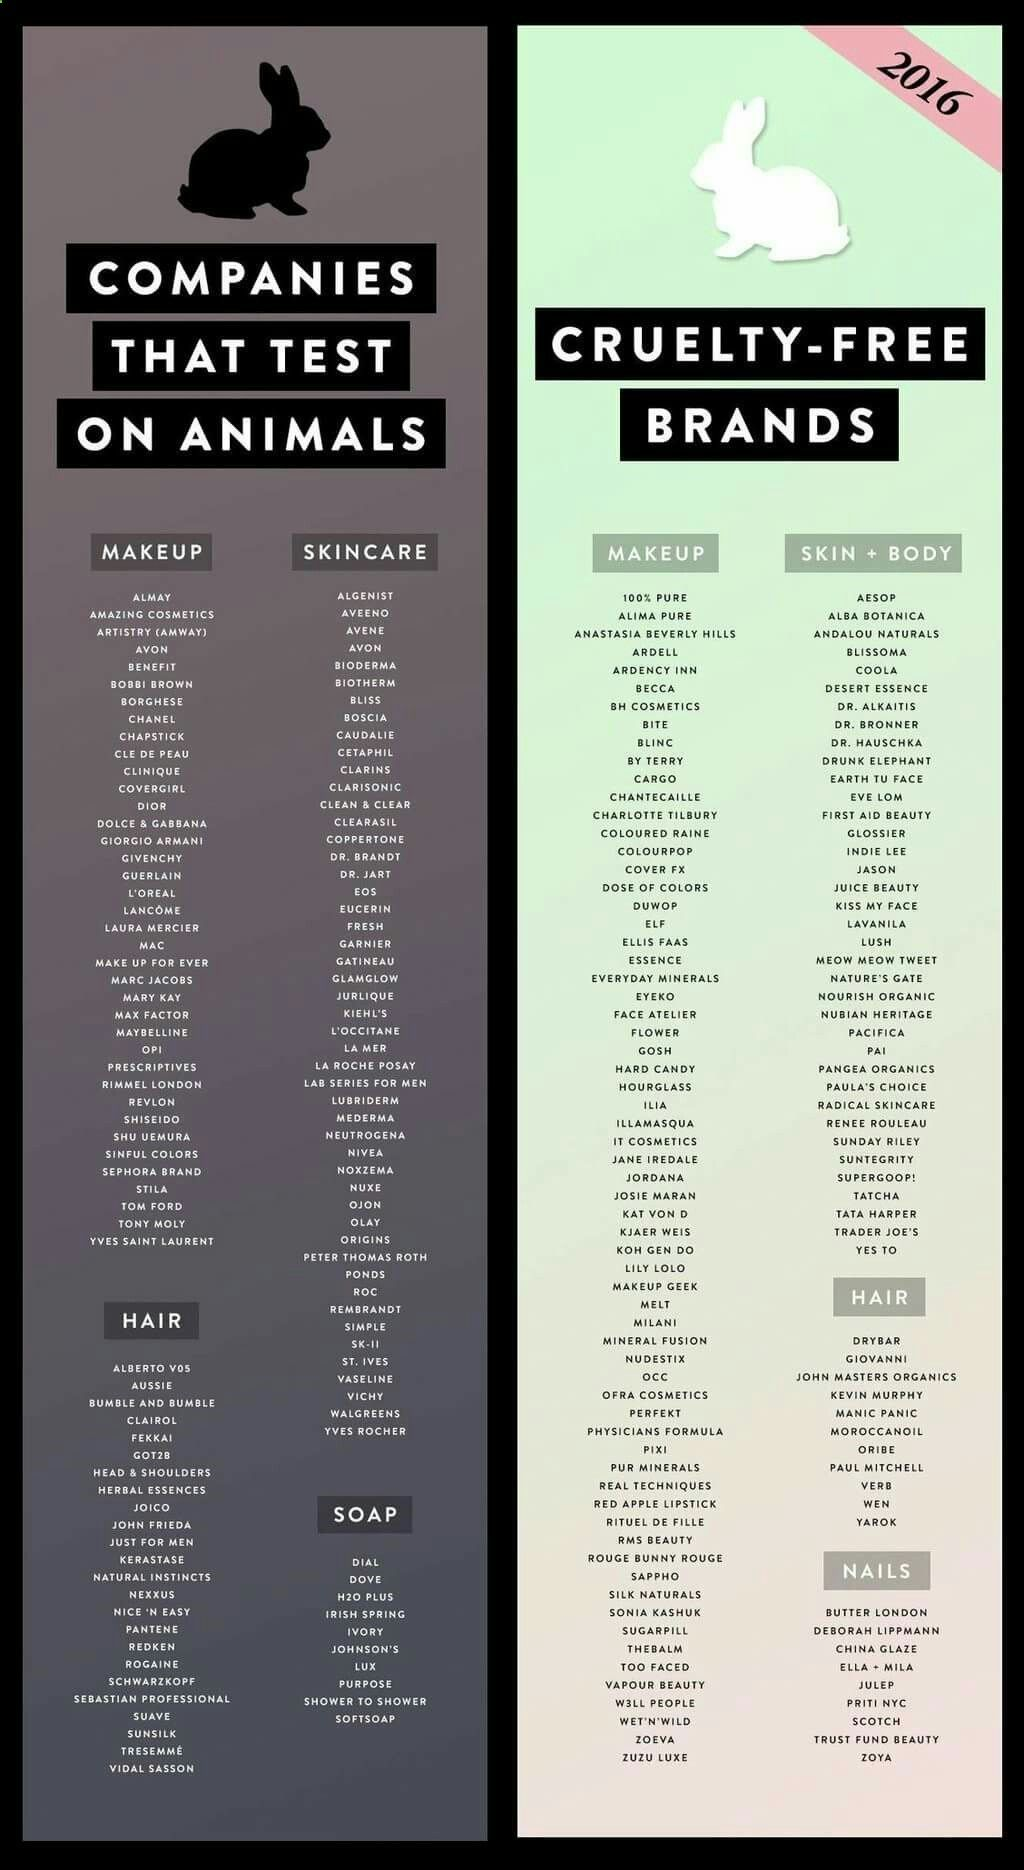 Skin Care Tips Companies That Test On Animals V Companies That Dont Do You Still Not Know The Ma Cruelty Free Brands Cruelty Free Beauty Cruelty Free Makeup